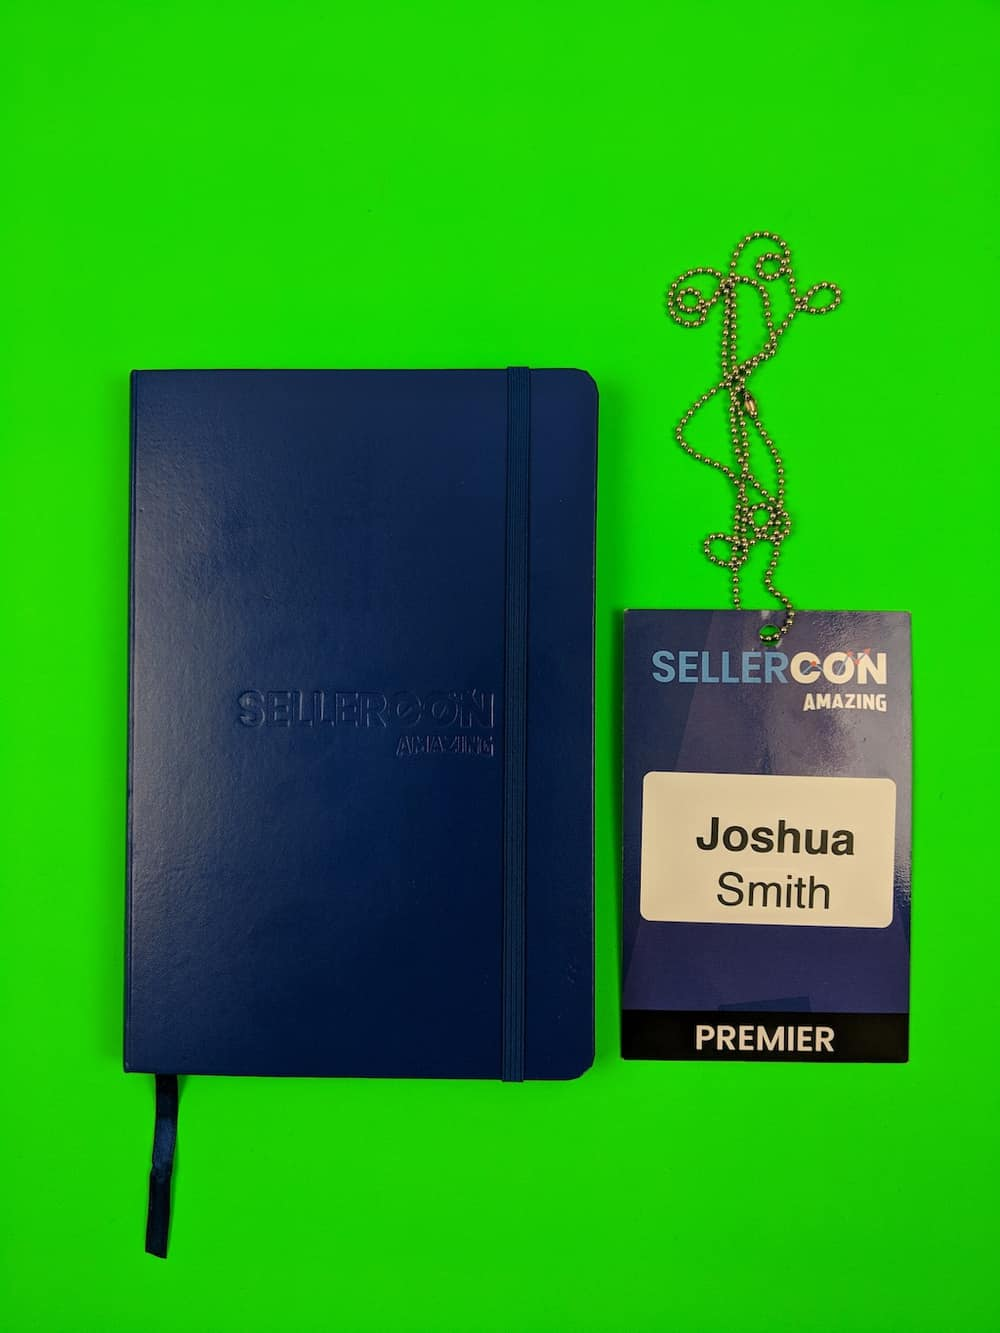 Amazing Selling Machine conference review